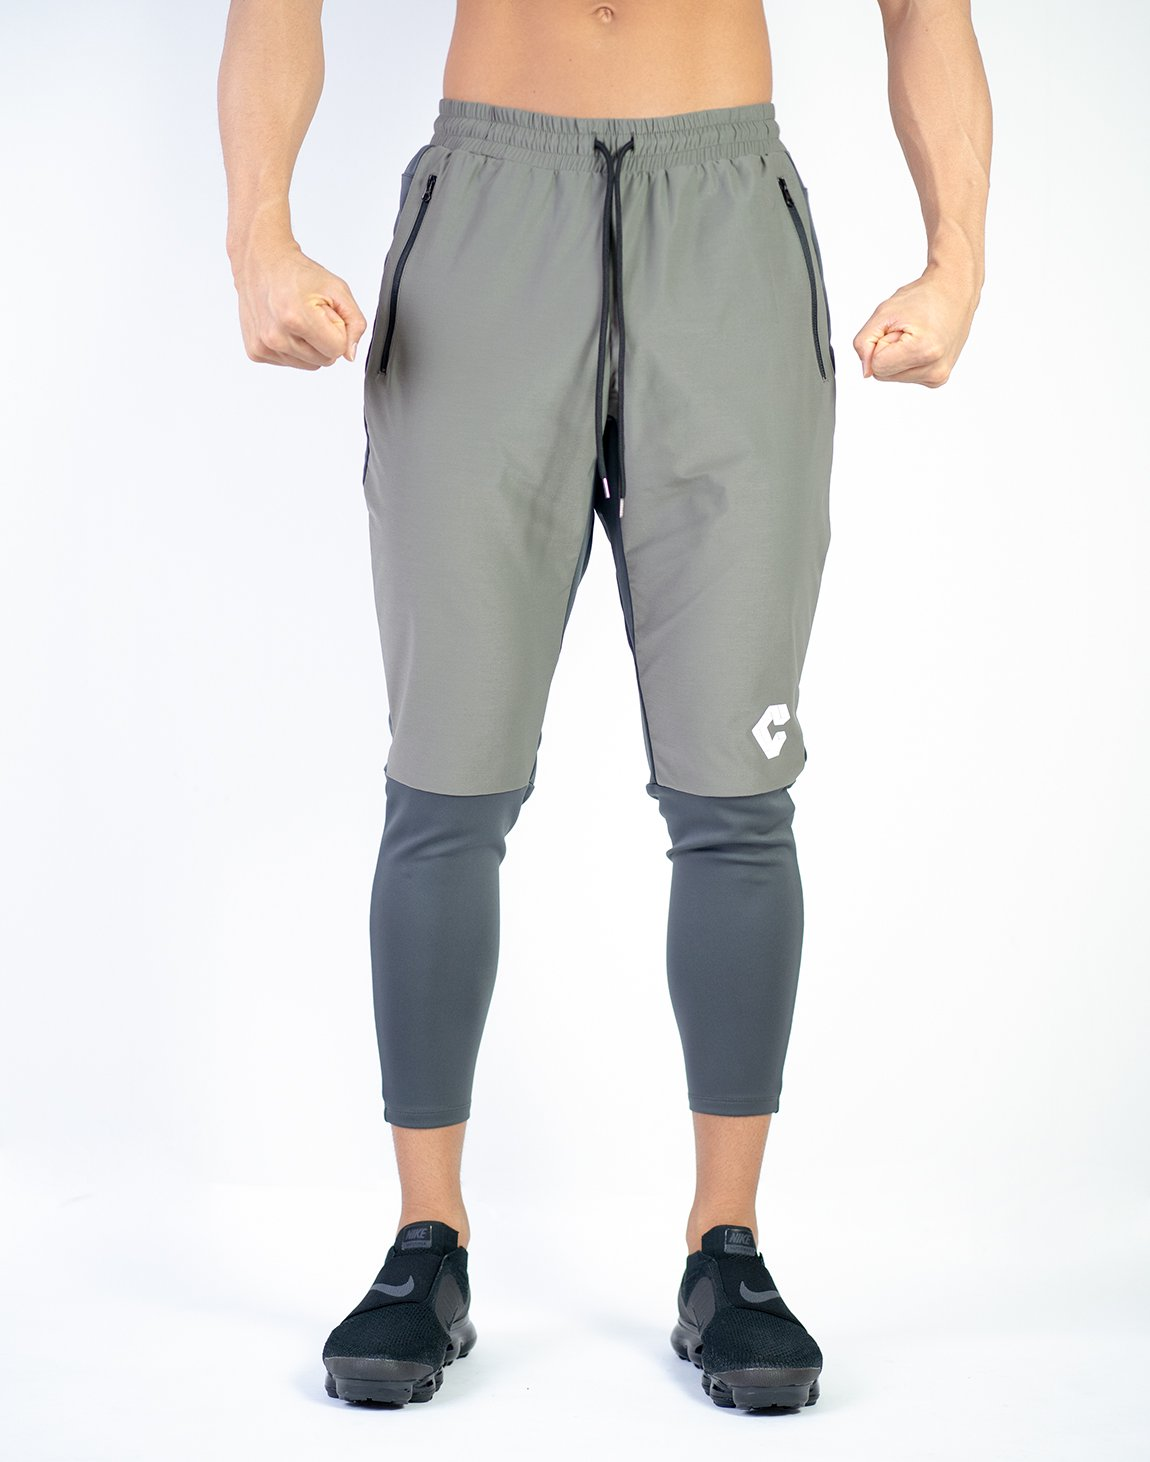 <img class='new_mark_img1' src='https://img.shop-pro.jp/img/new/icons1.gif' style='border:none;display:inline;margin:0px;padding:0px;width:auto;' />MODE BiCOLOR FIT PANTS KHA×GRAY